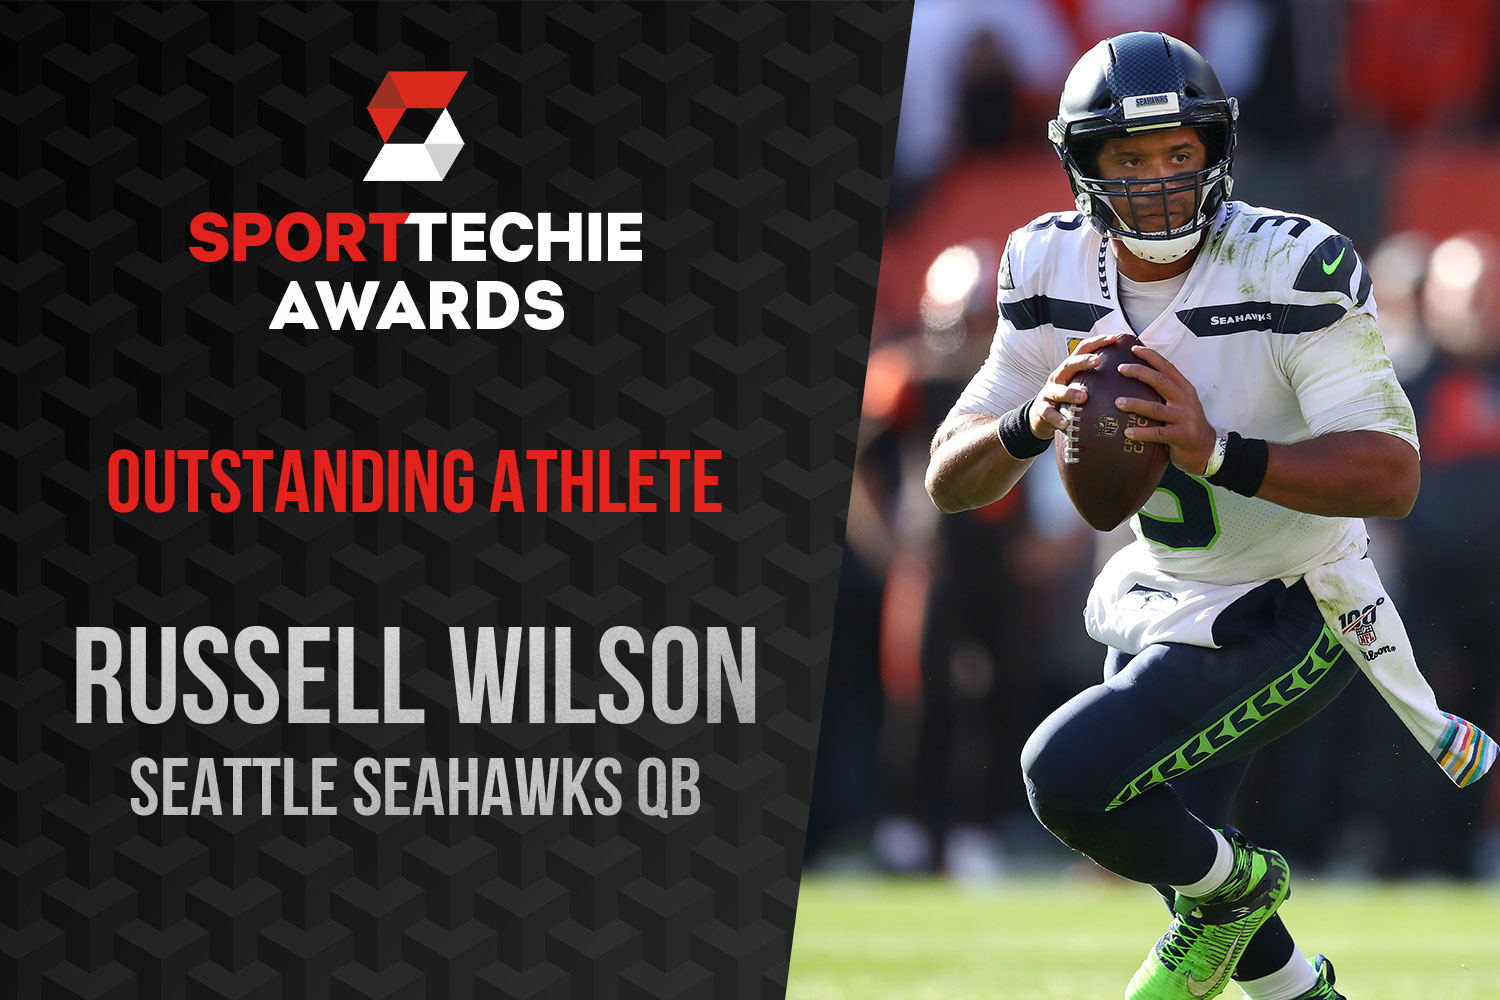 SportTechie Awards: Russell Wilson Is Our 2019 Athlete of the Year